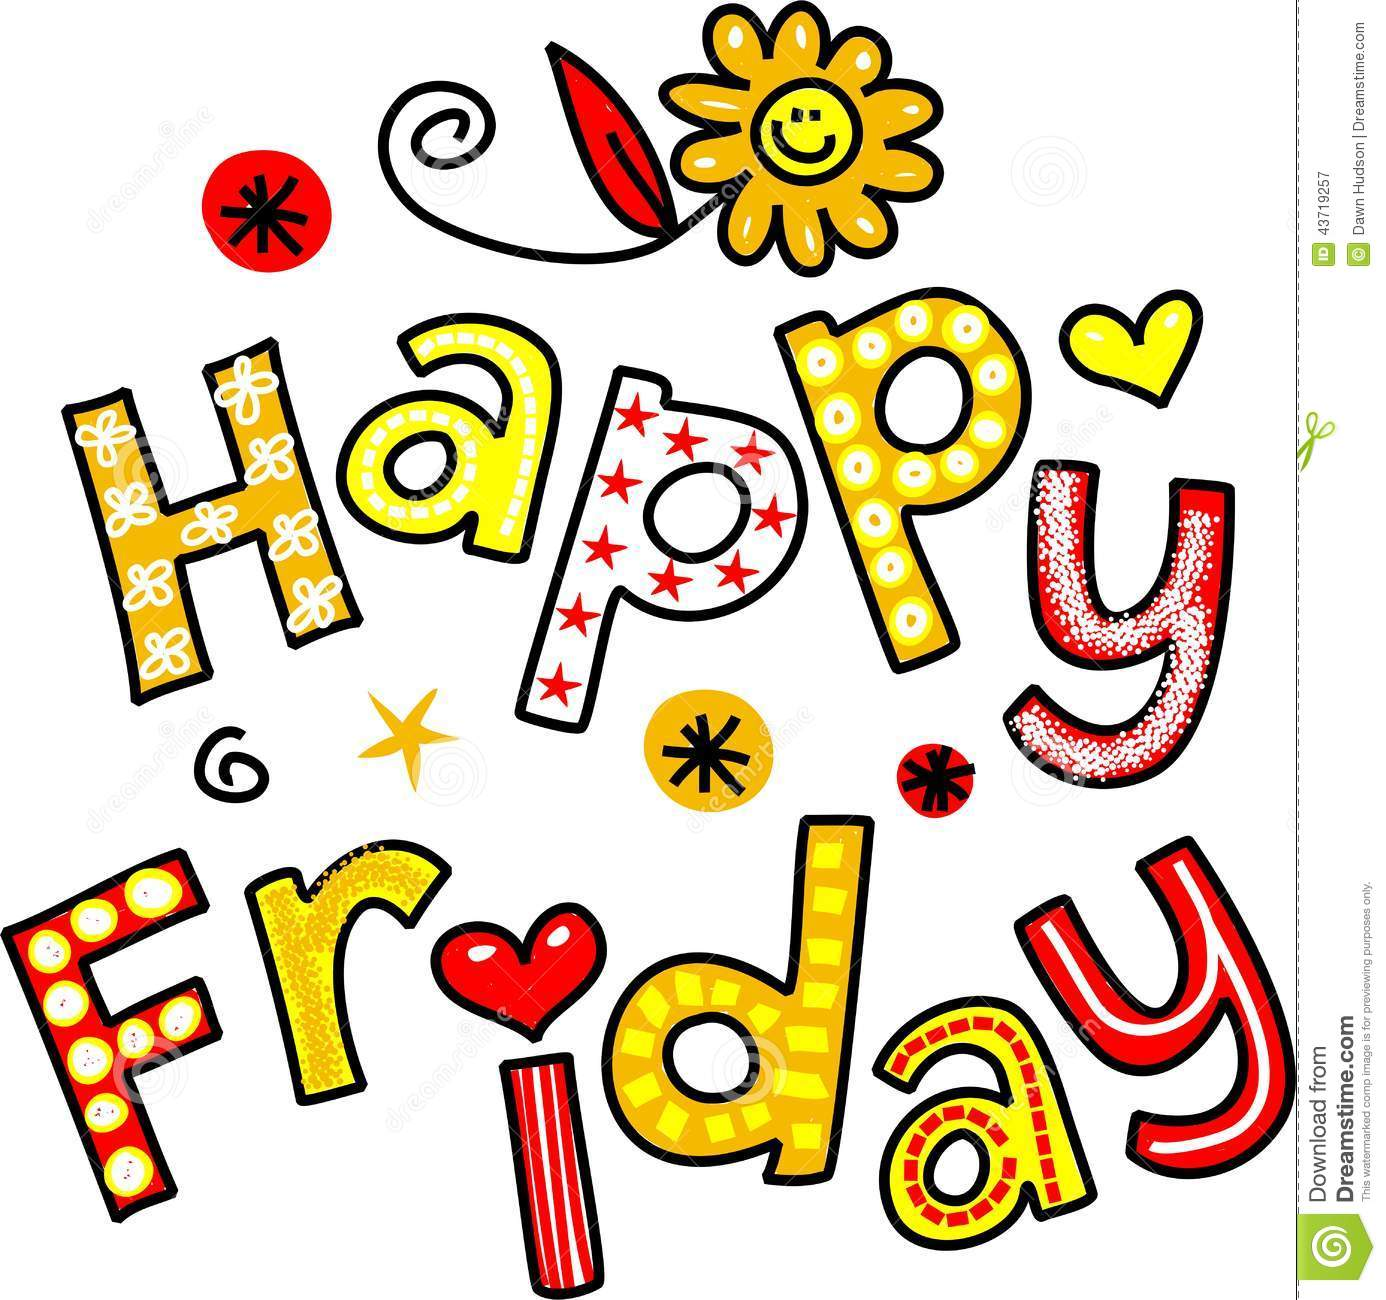 Happy Friday Animated Clipart.